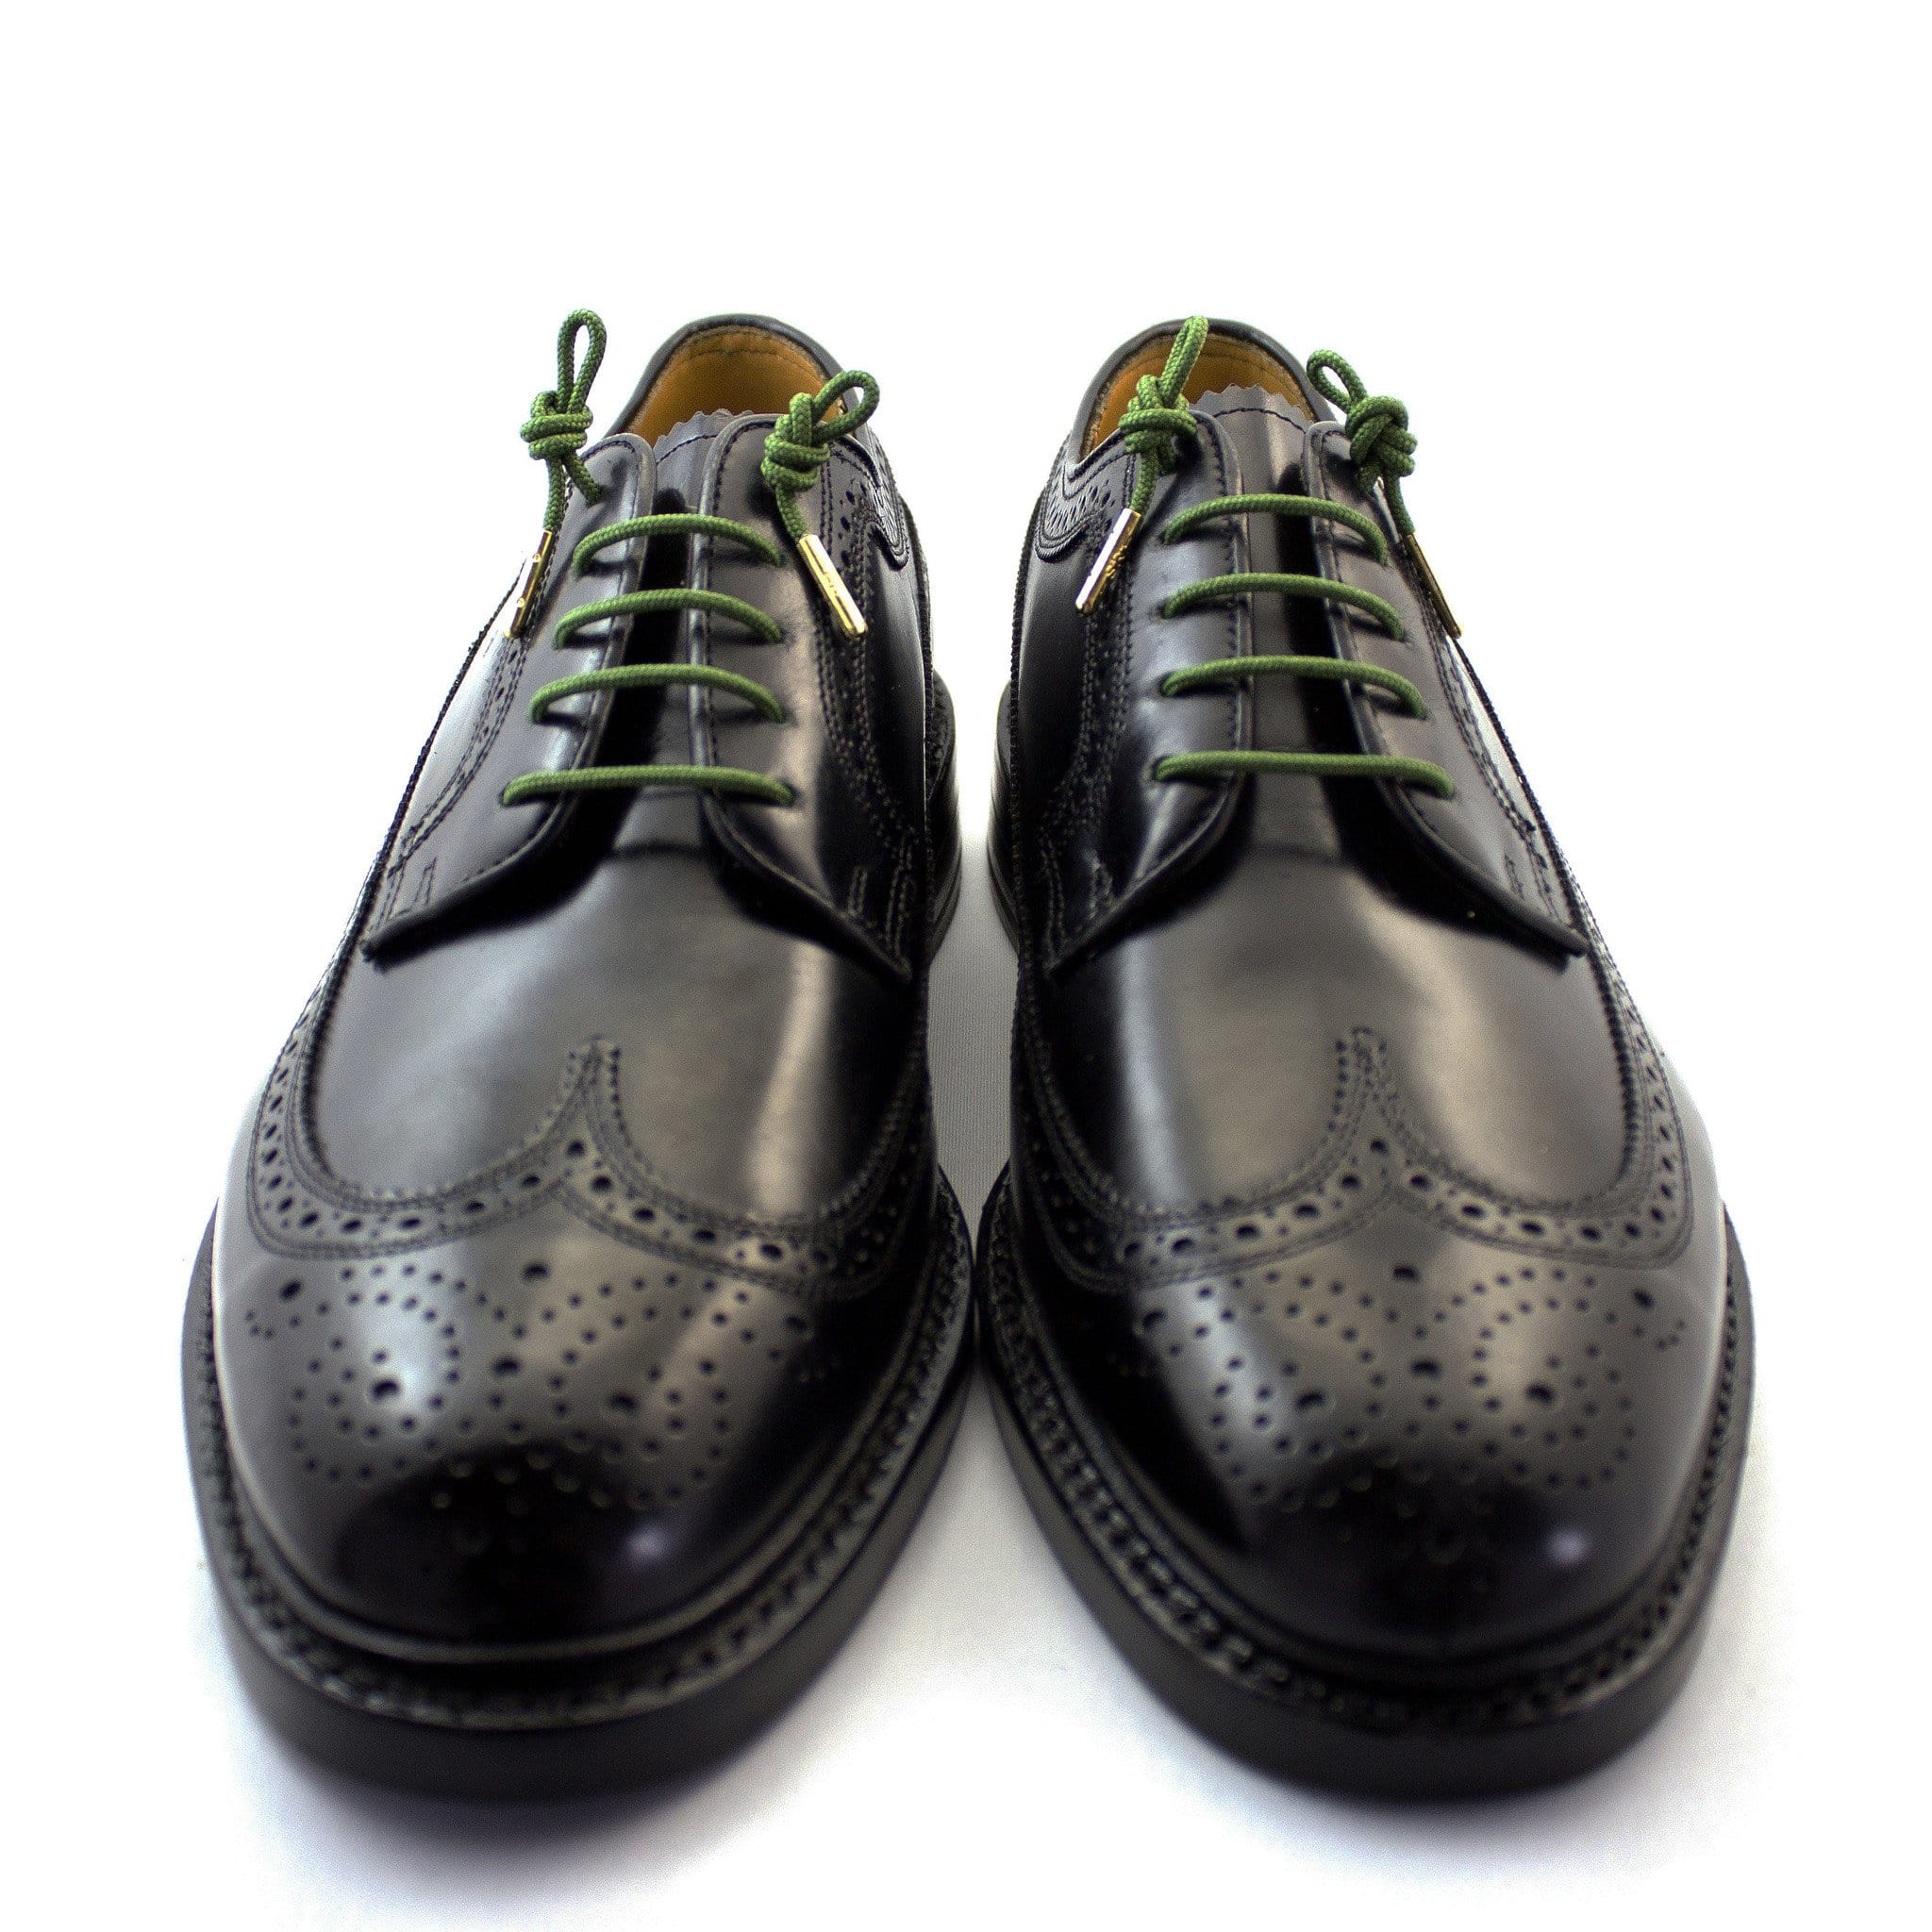 "Army green laces for dress shoes, Length: 27""/69cm-Stolen Riches"